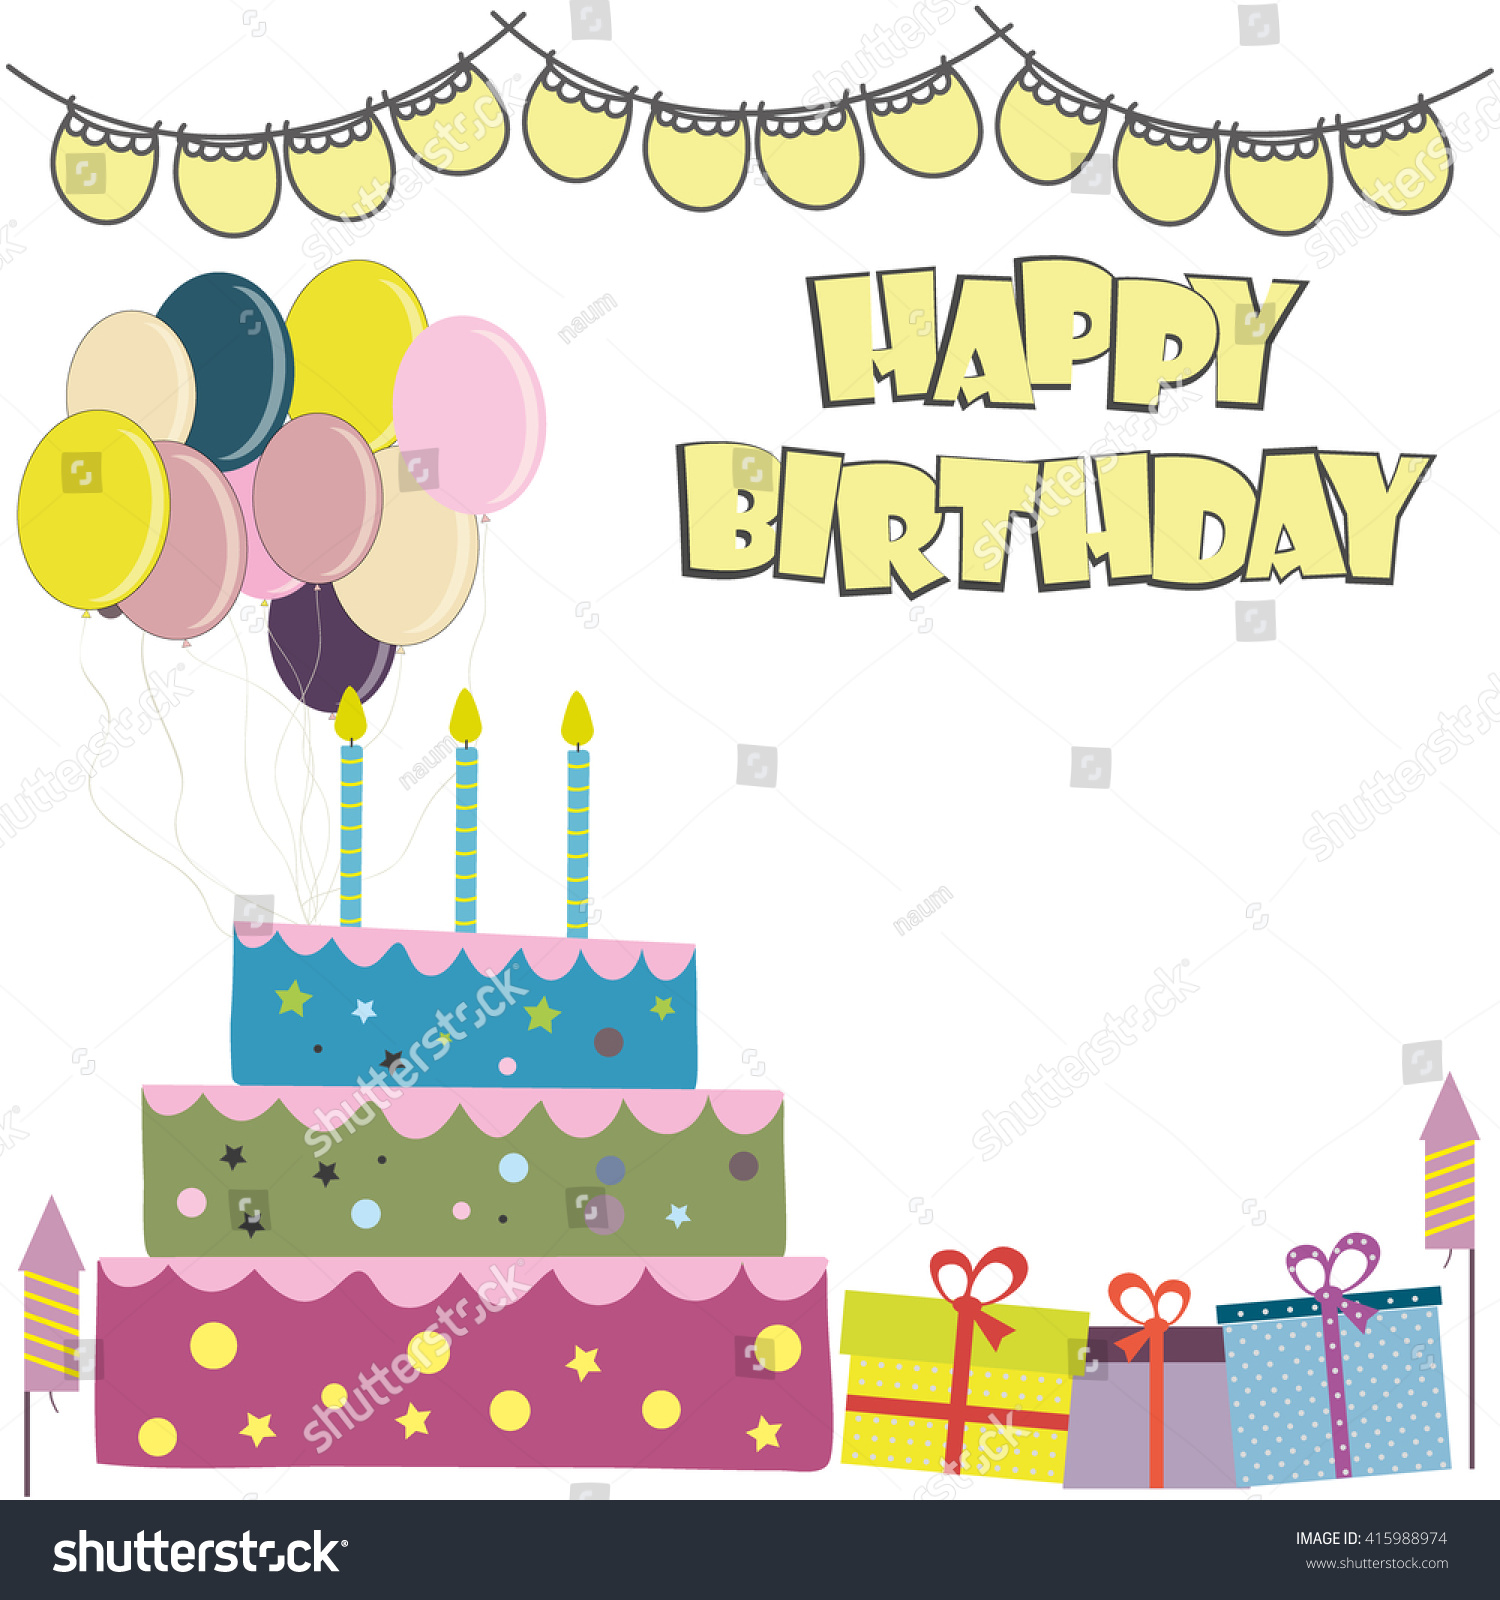 Happy Birthday Card Birthday Cakeplace Text Stock Vector 415988974